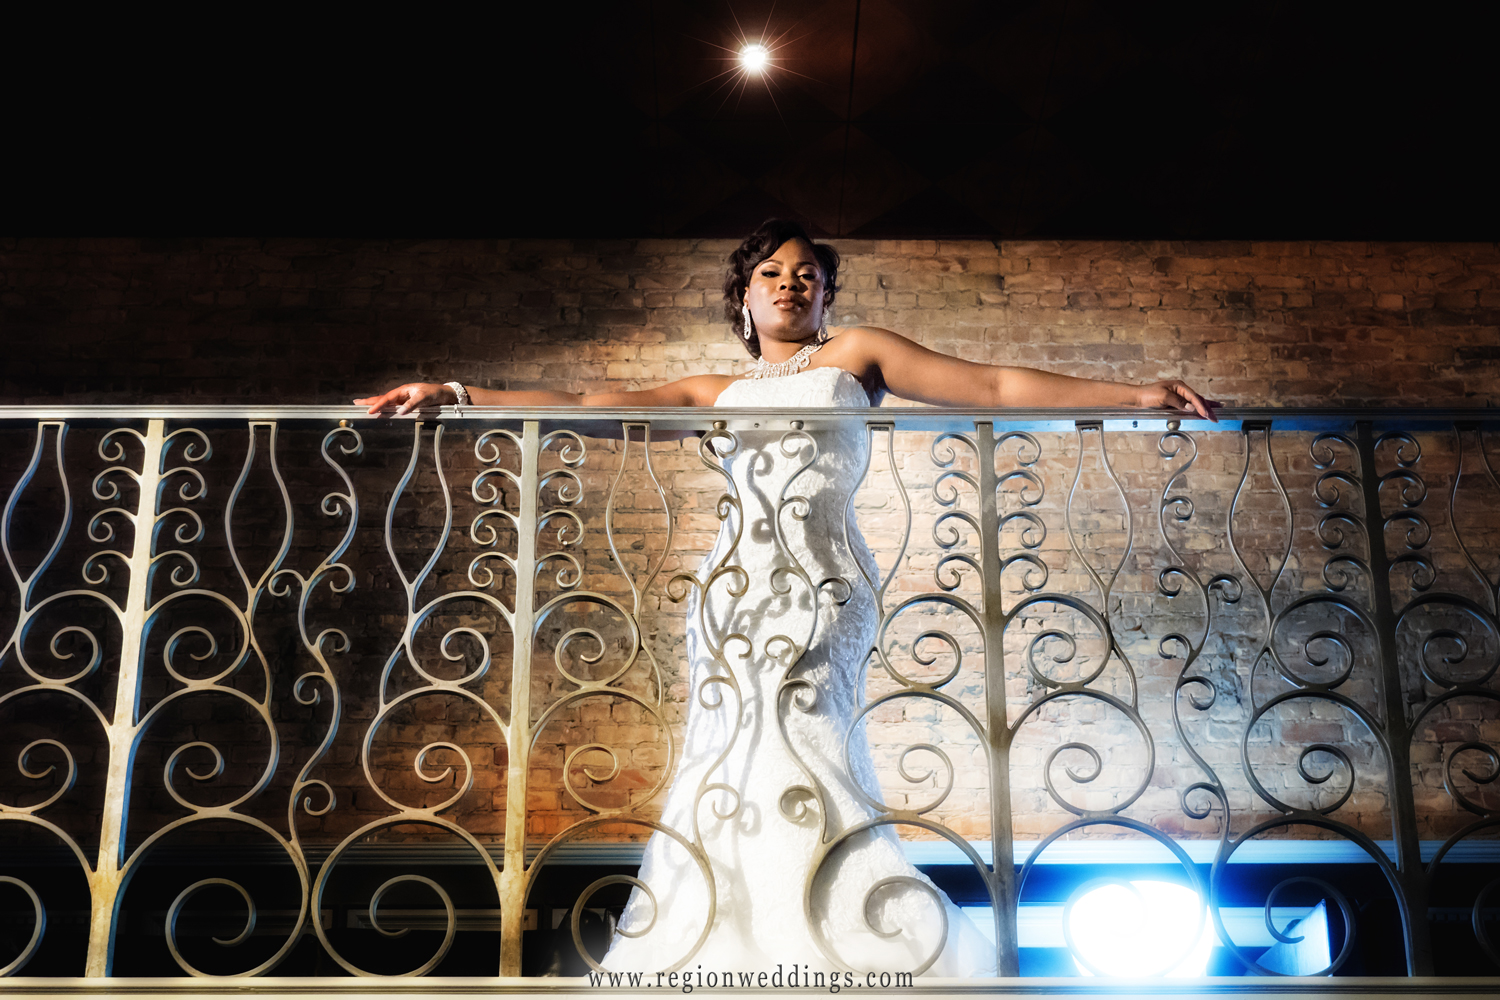 The bride stretches across the balcony railing at The Allure.